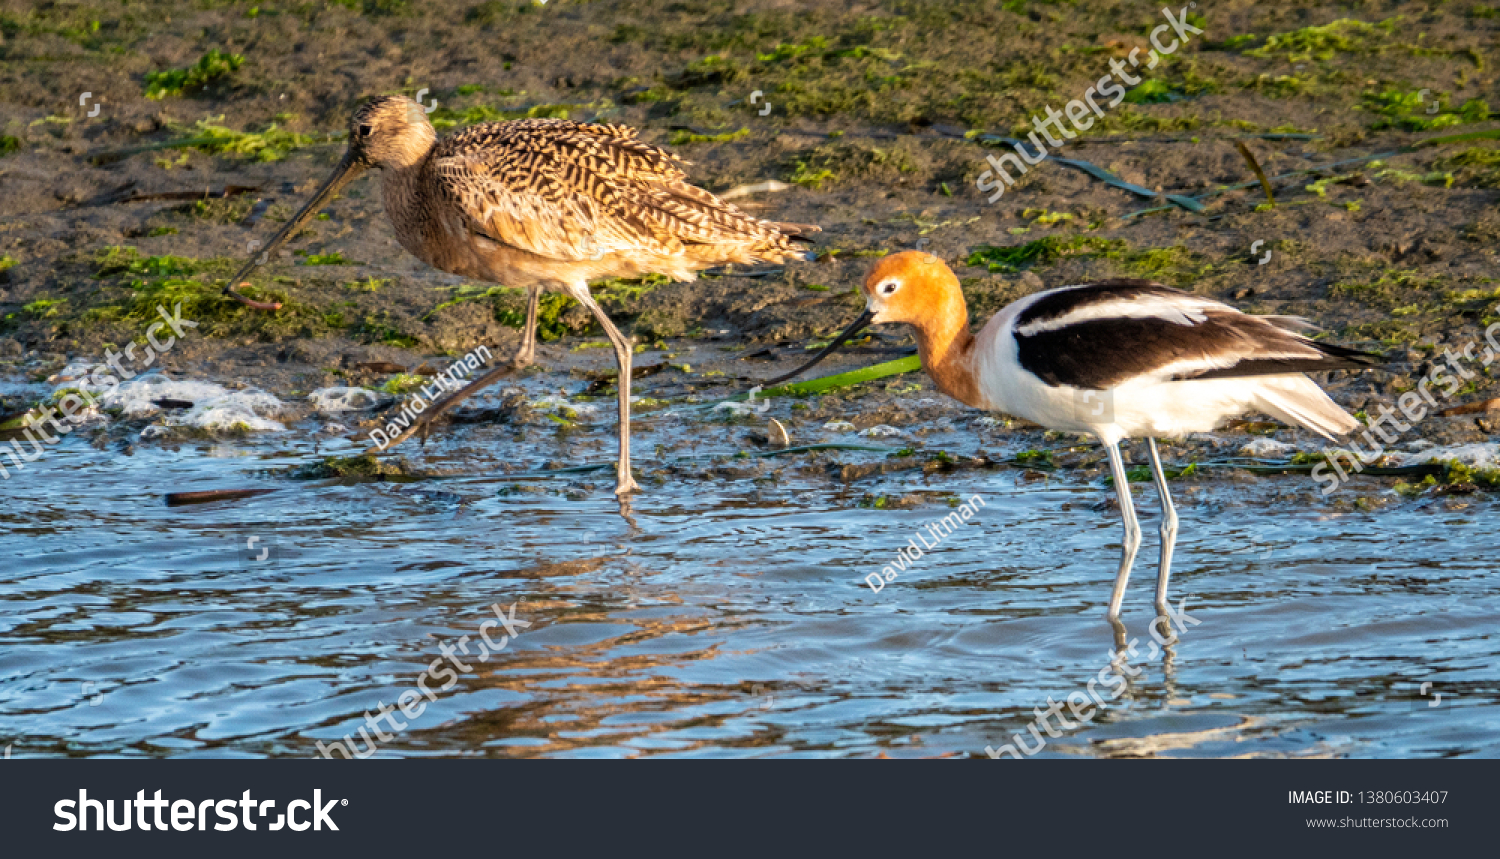 A Marbled Godwit (Limosa fedoa), left, walks next to an American Avocet (Recurvirostra americana) at Elkhorn Slough, near Moss Landing, along the Monterey Bay of central California.